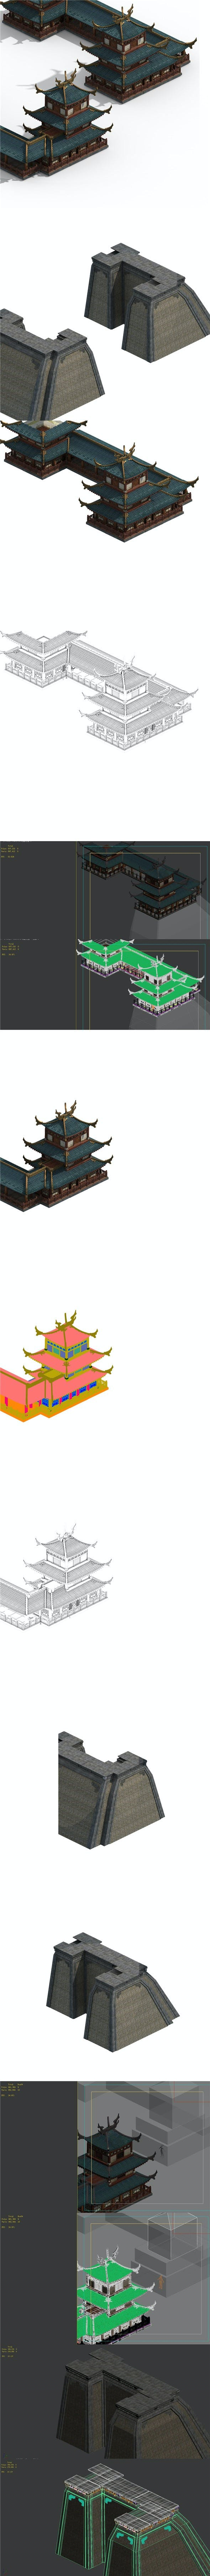 China large city - 3DOcean Item for Sale